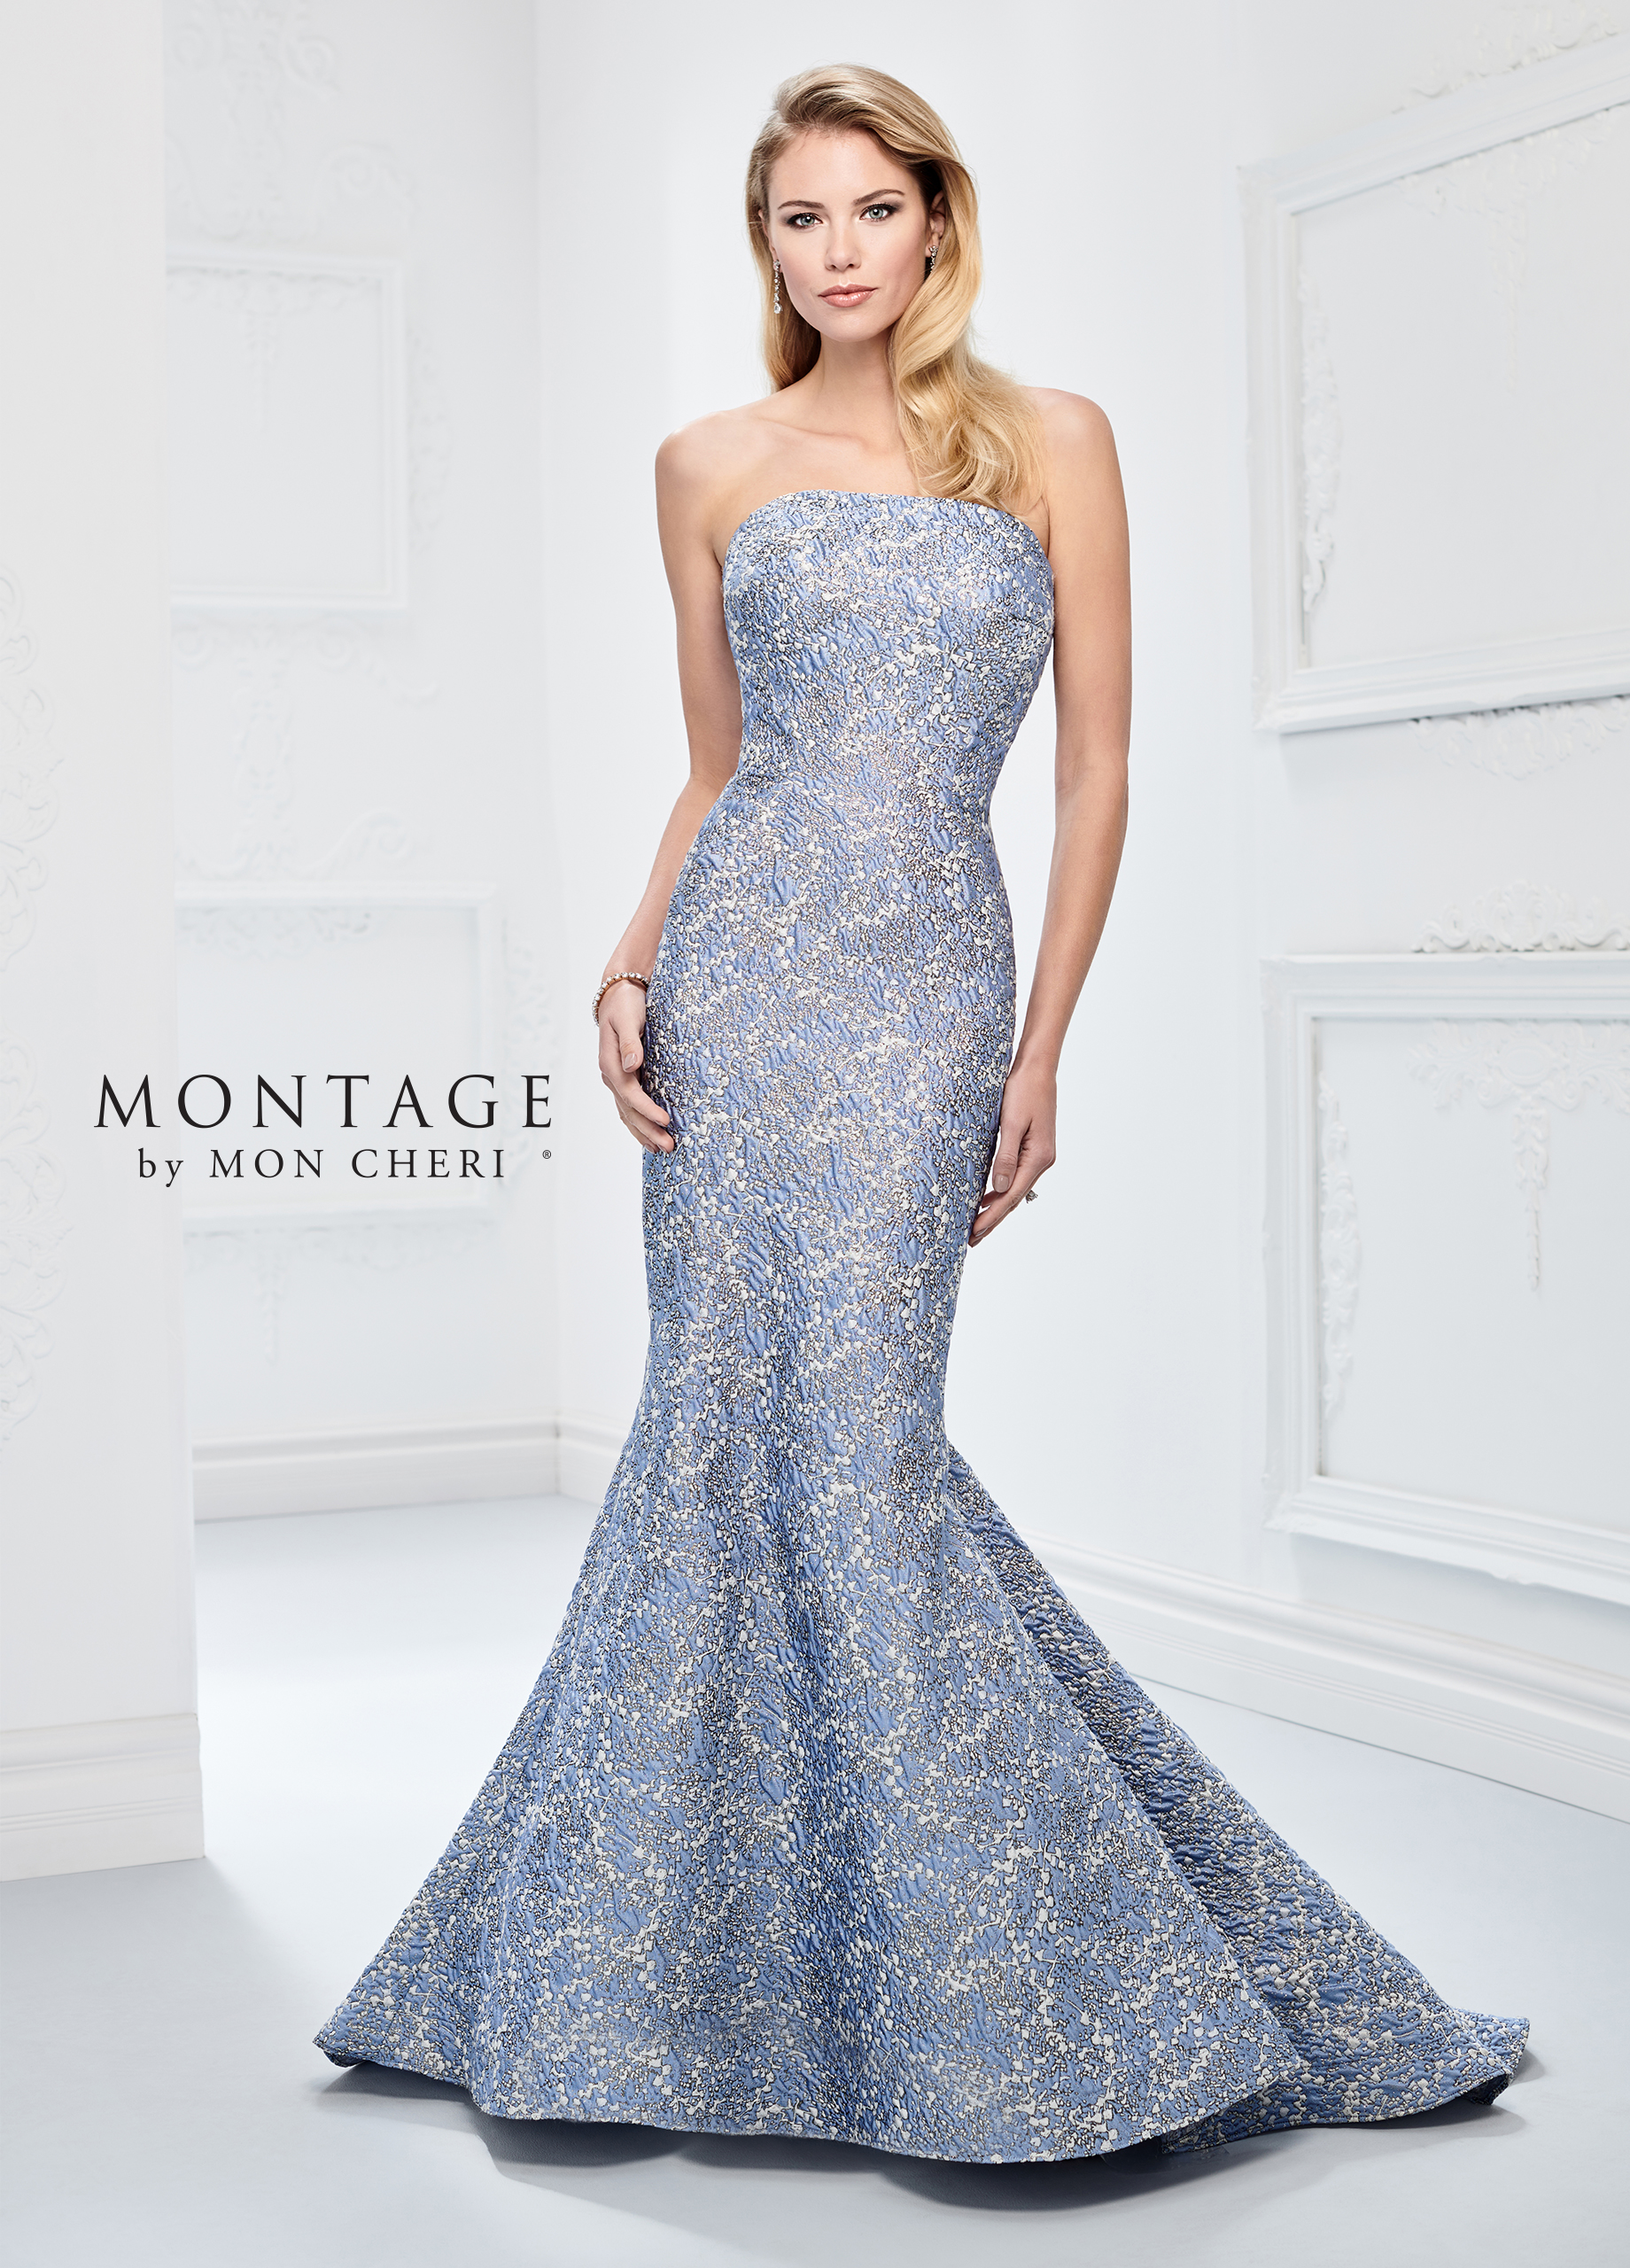 6bbe5ea4771 This strapless brocade curve-hugging mermaid gown with metallic accents  throughout offers a slightly dipped back